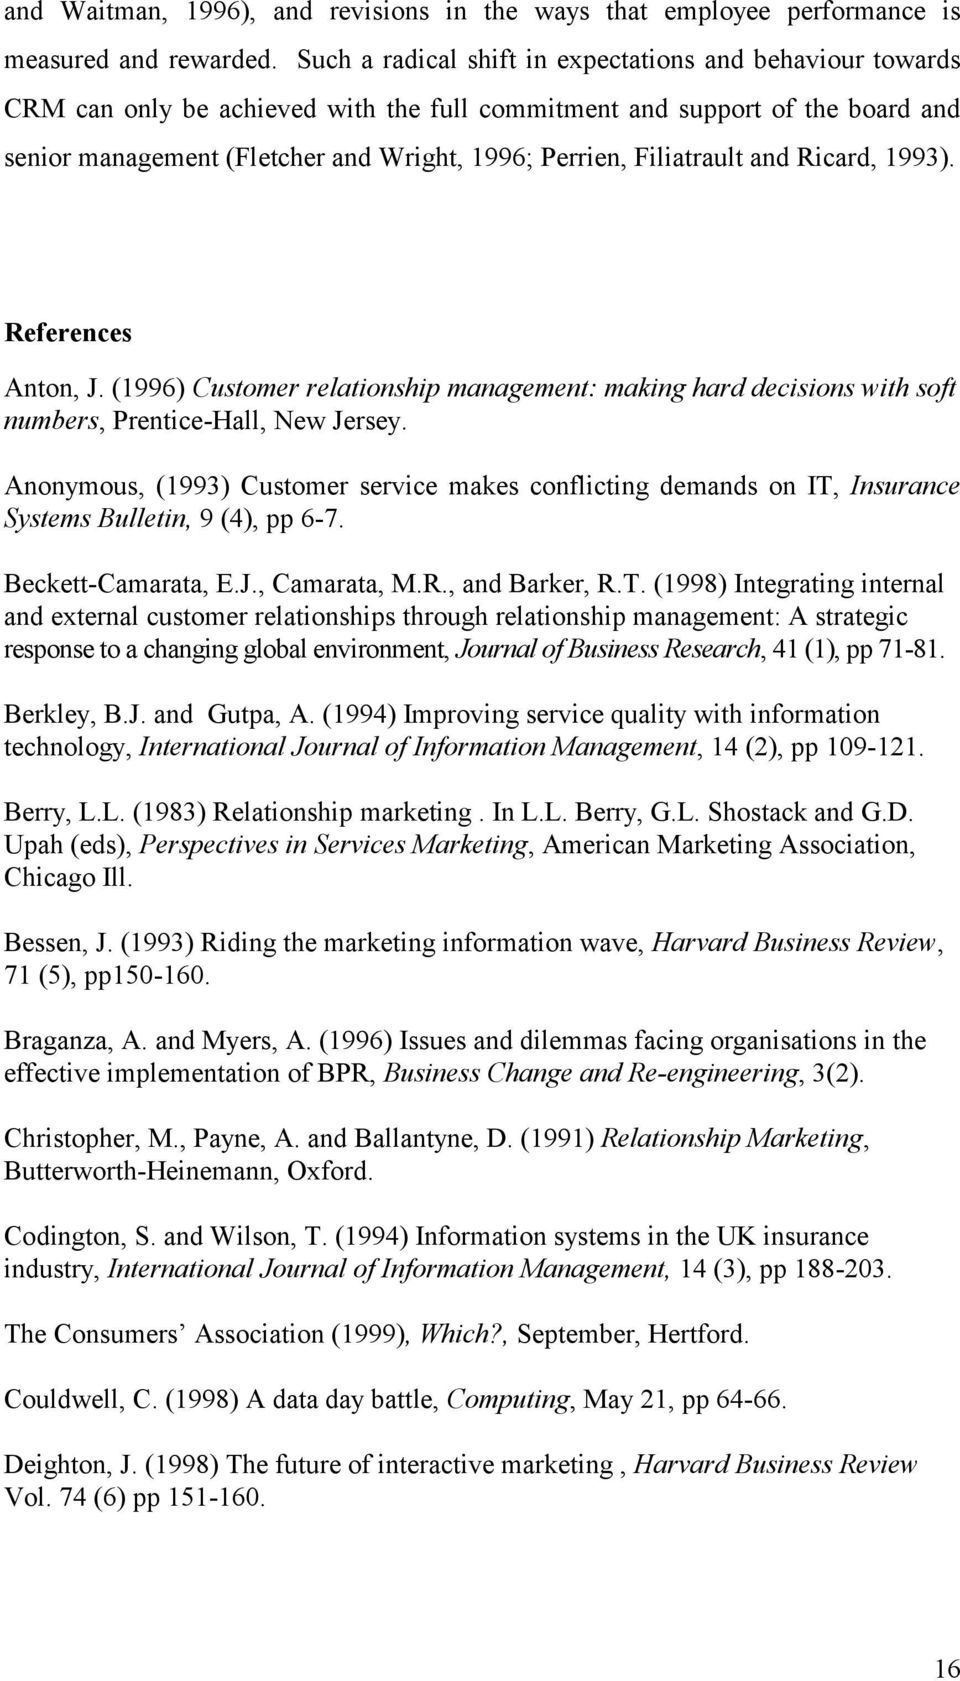 Filiatrault and Ricard, 1993). References Anton, J. (1996) Customer relationship management: making hard decisions with soft numbers, Prentice-Hall, New Jersey.